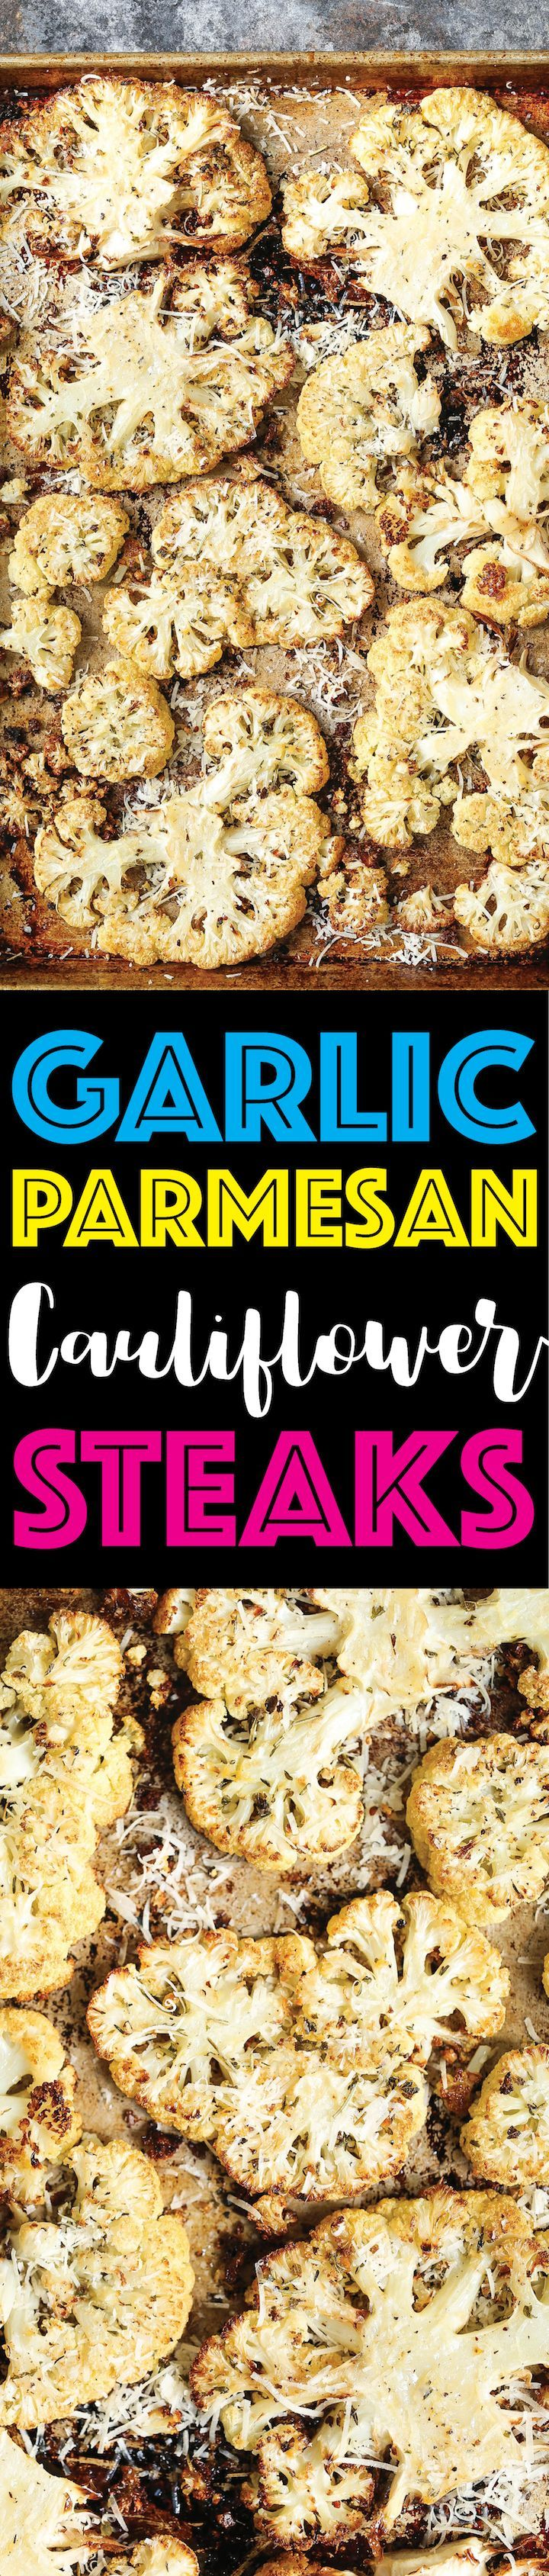 Garlic Parmesan Cauliflower Steaks - Your new go-to side dish! Roasted cauliflower is the best/easiest way to go! So crisp-tender and perfectly seasoned!